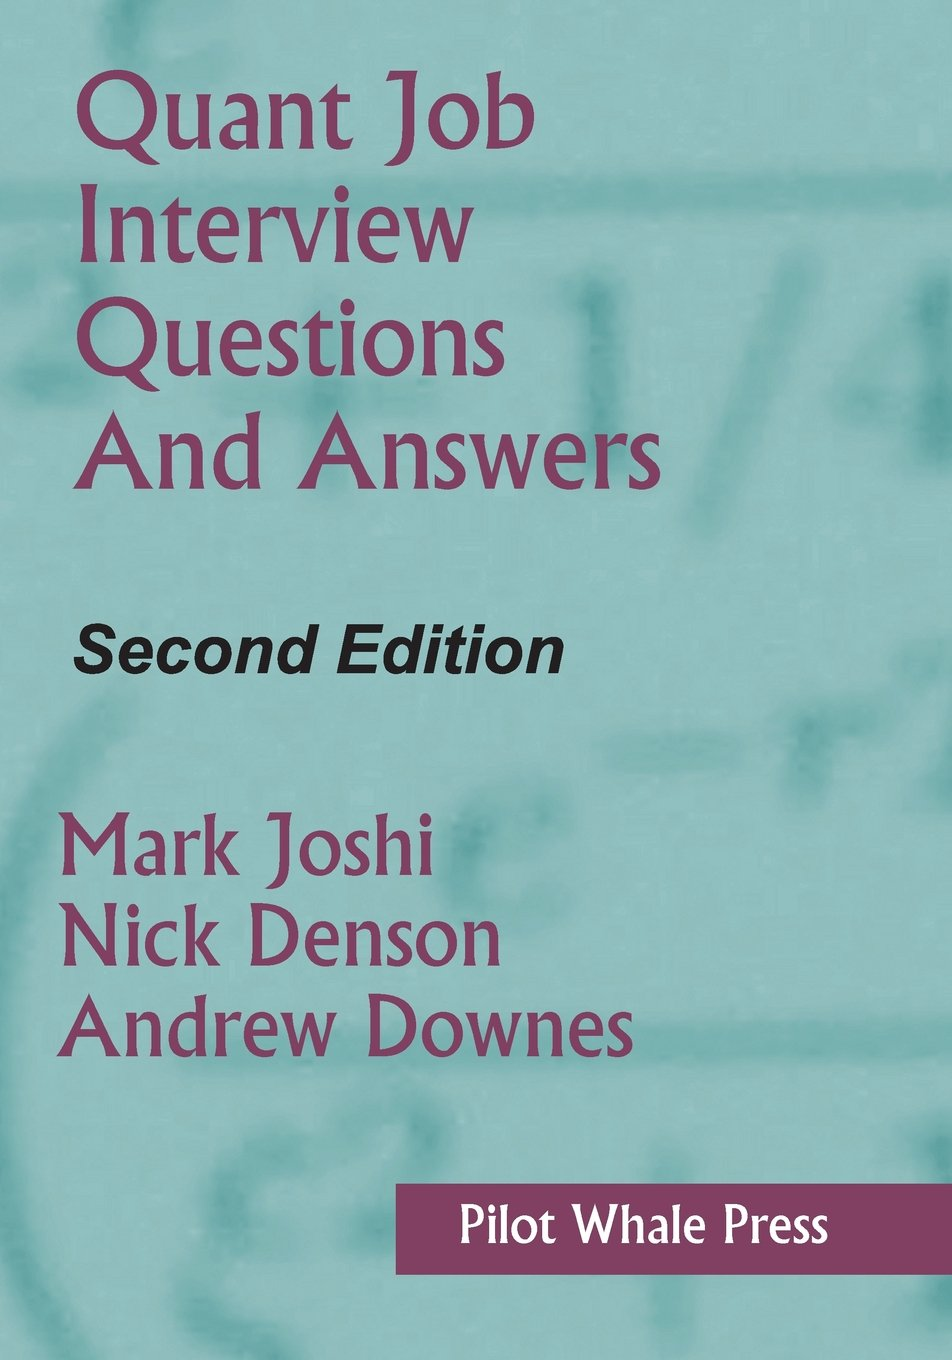 quant job interview questions and answers second edition amazon quant job interview questions and answers second edition amazon co uk mark joshi nicholas denson andrew downes 9780987122827 books